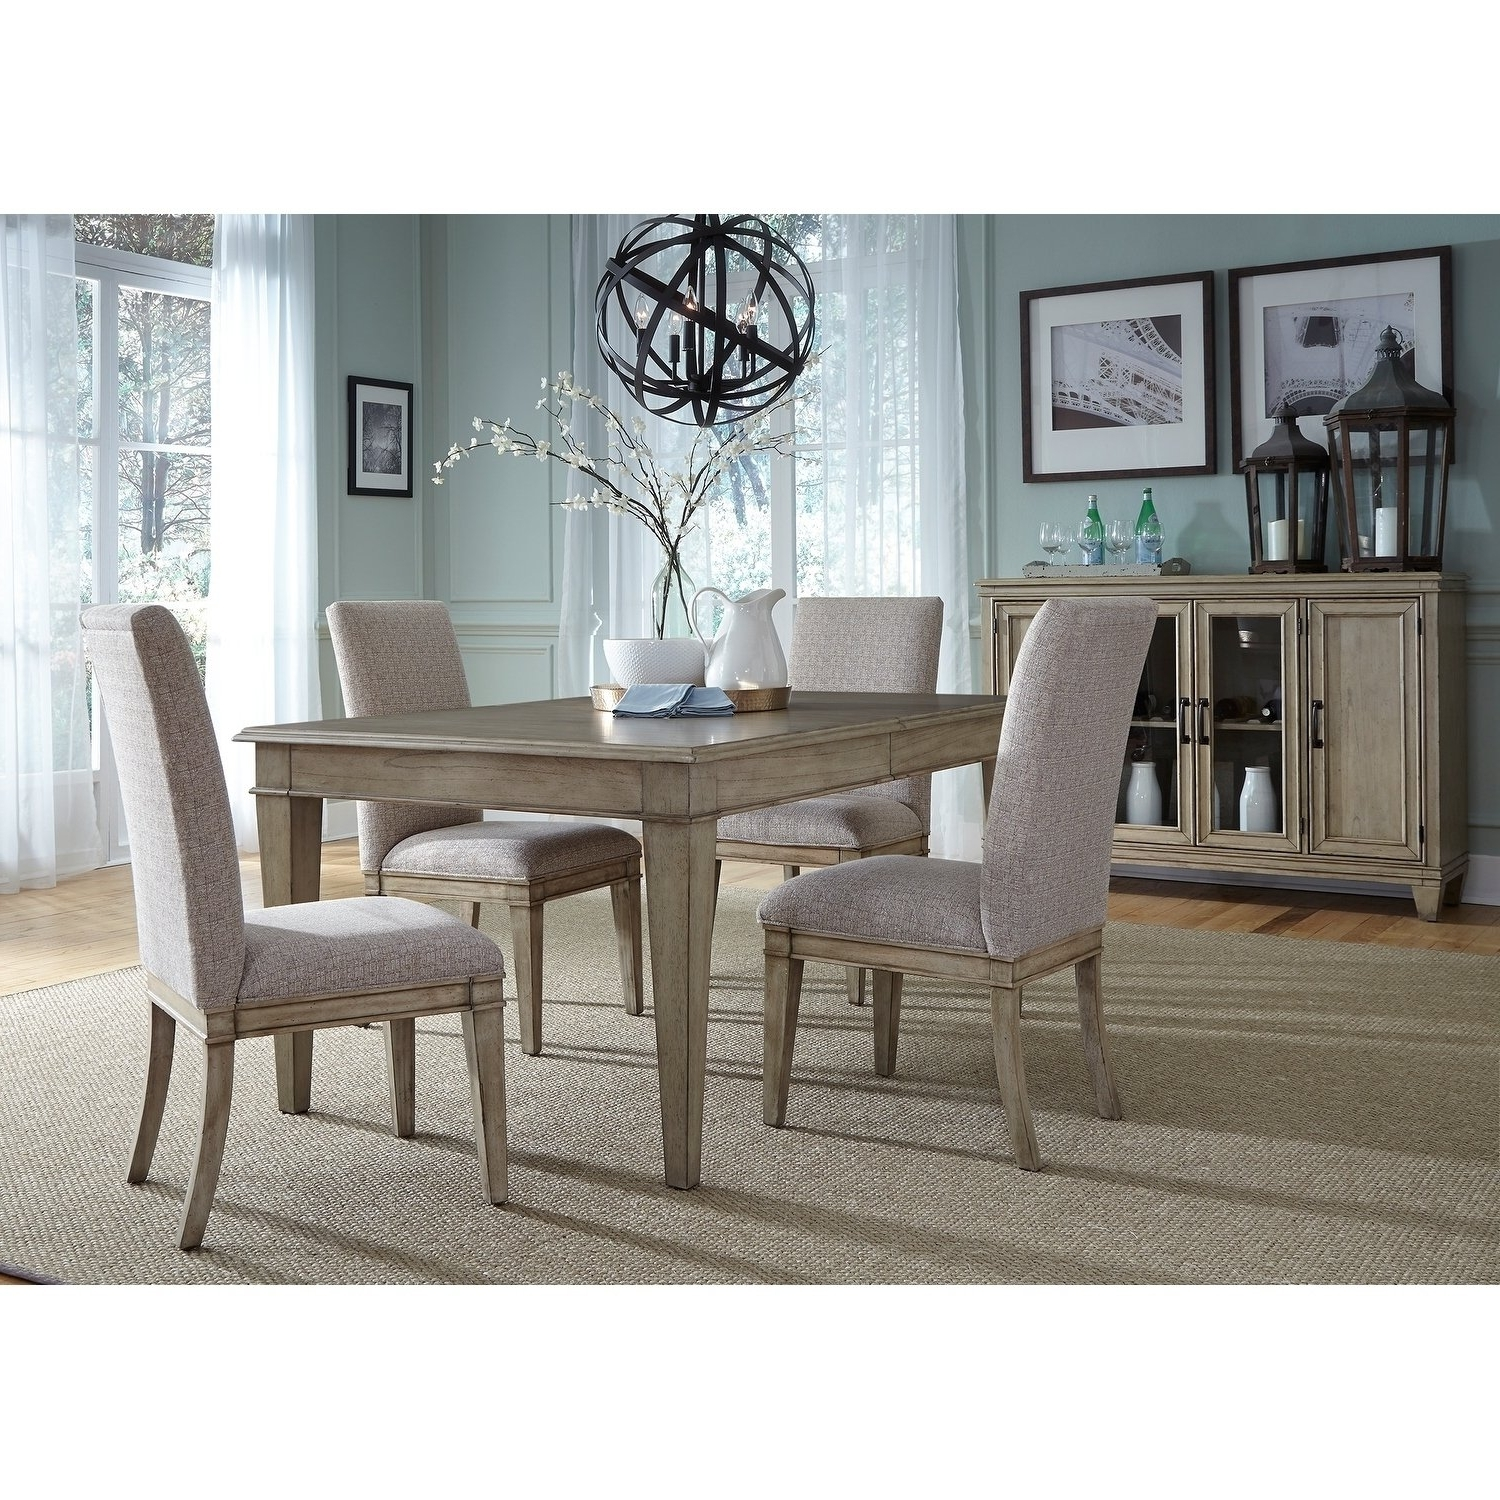 Most Recently Released Jaxon 5 Piece Extension Round Dining Sets With Wood Chairs Throughout Grayton Grove Driftwood Opt 5 Piece Rectangular Dining Table Set (View 13 of 25)